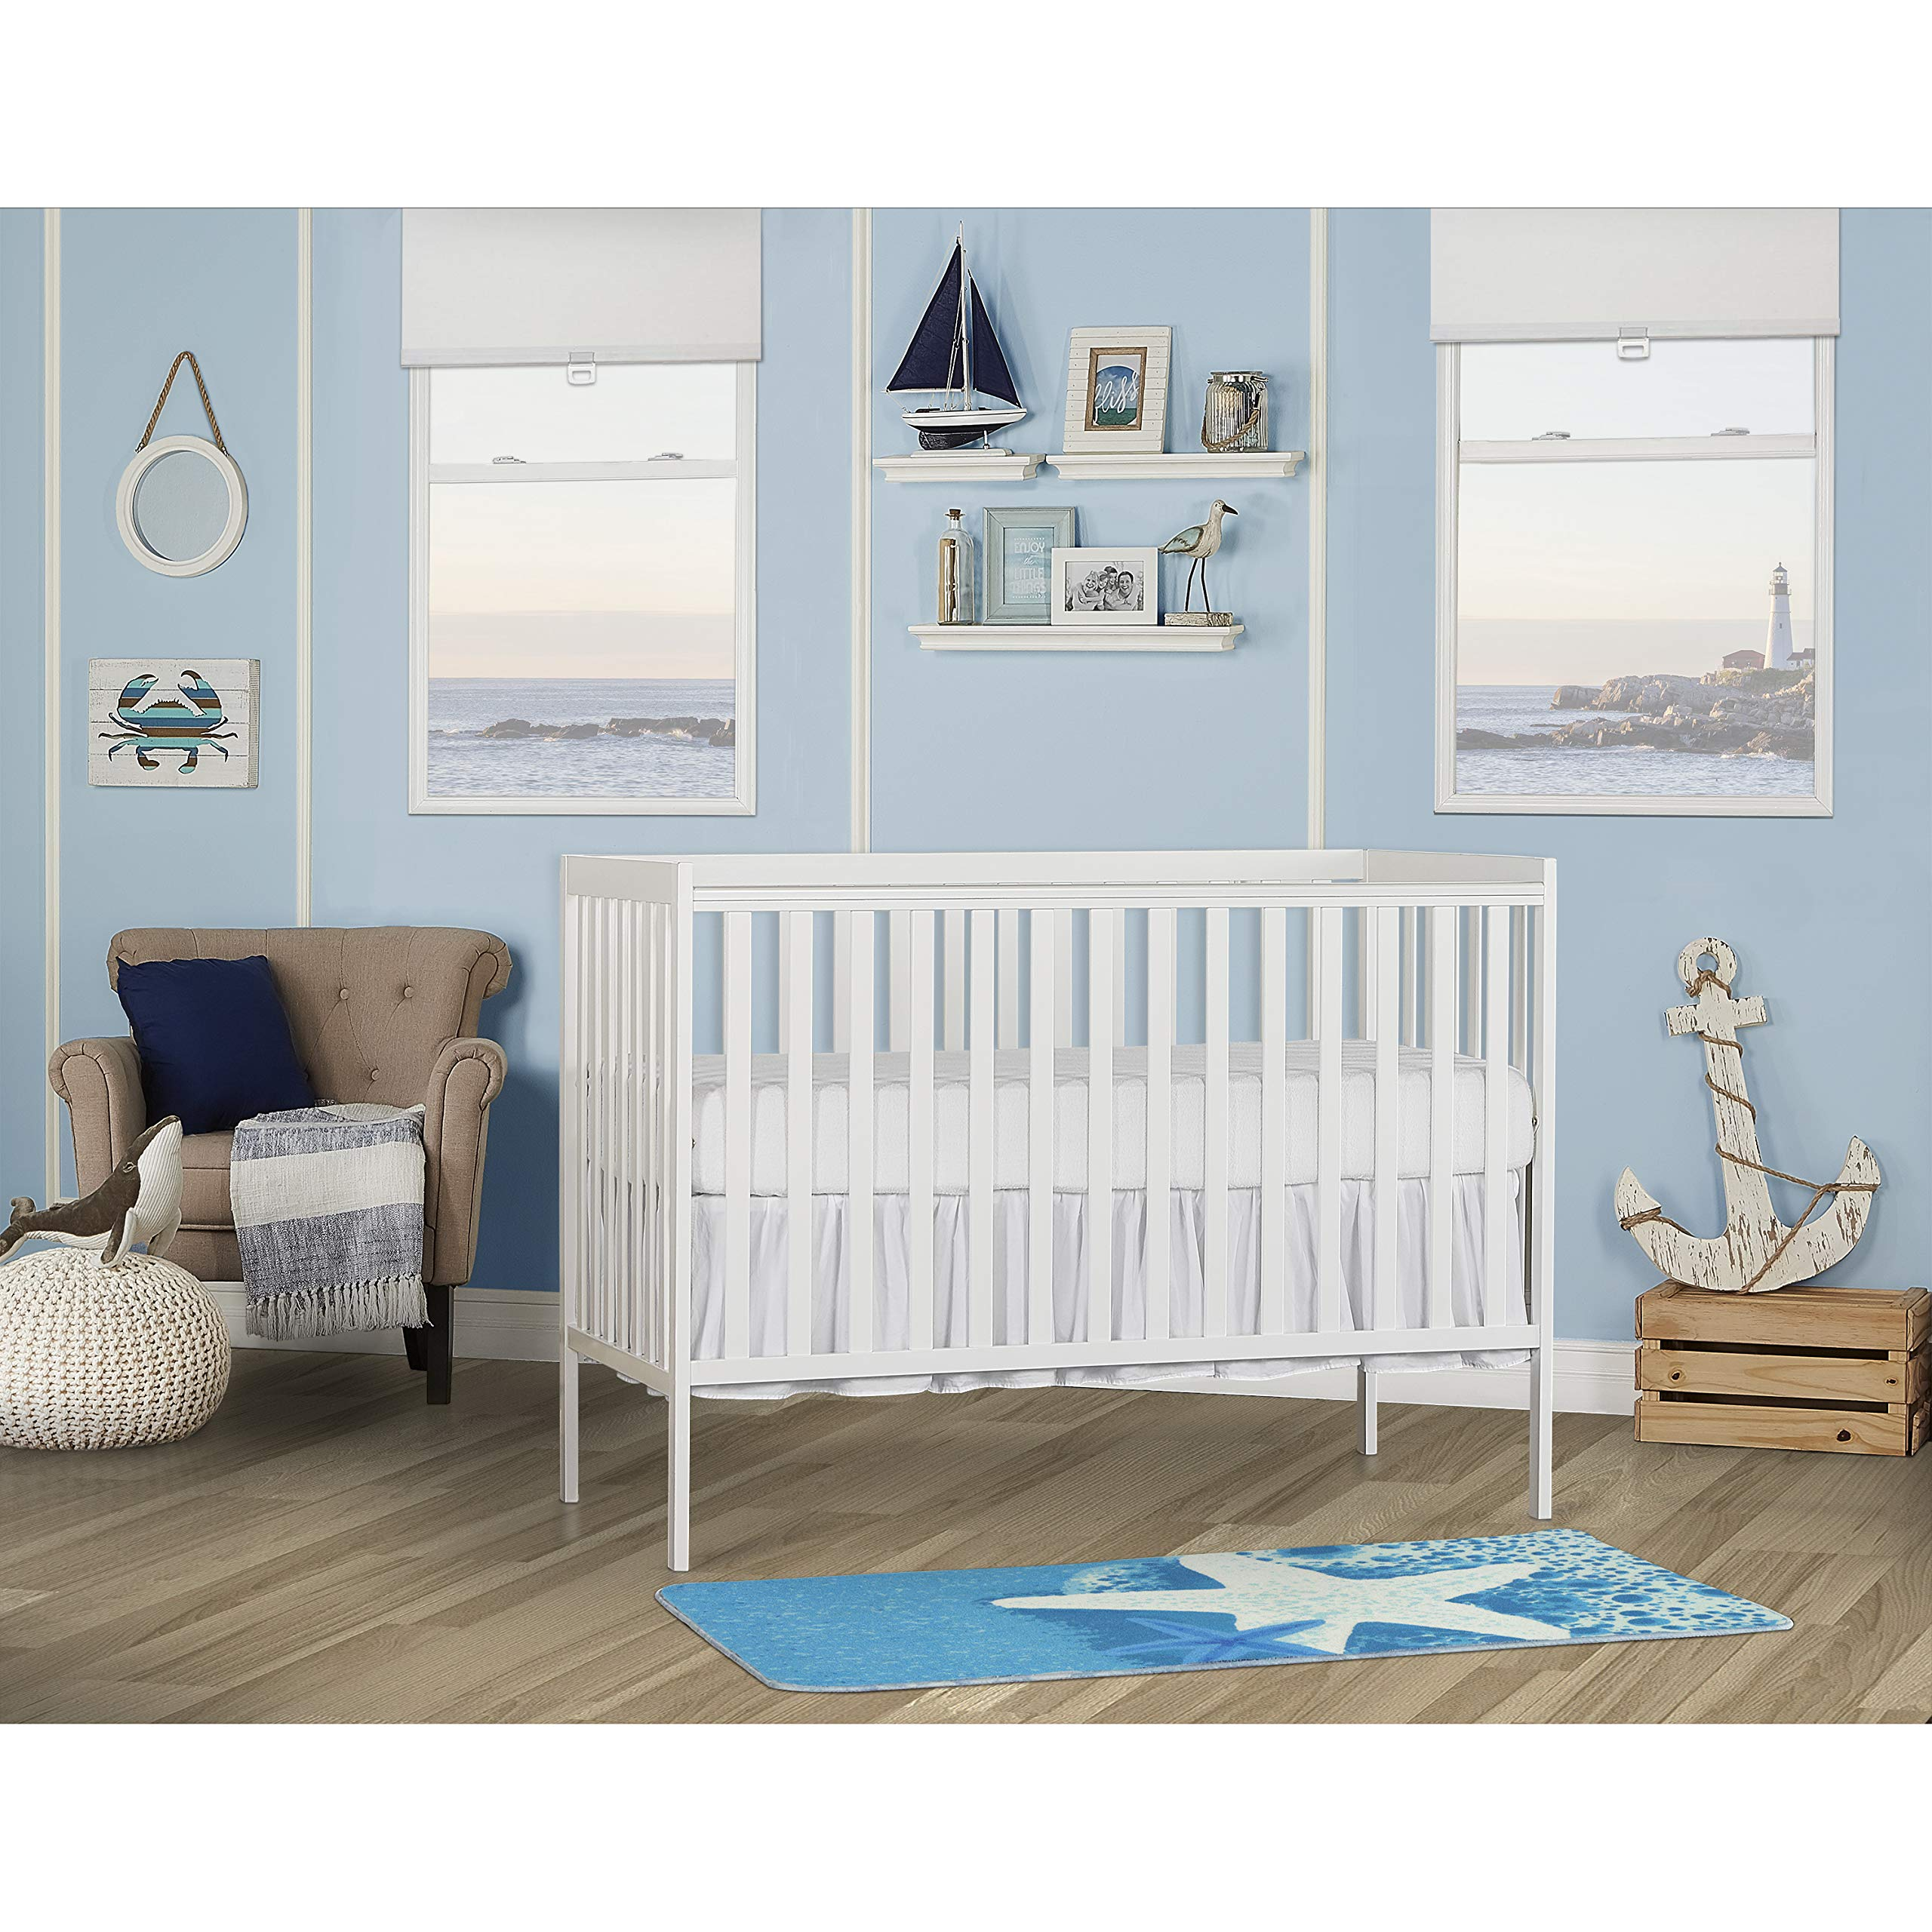 Dream On Me Synergy 5-in-1 Convertible, Crib, White by Dream On Me